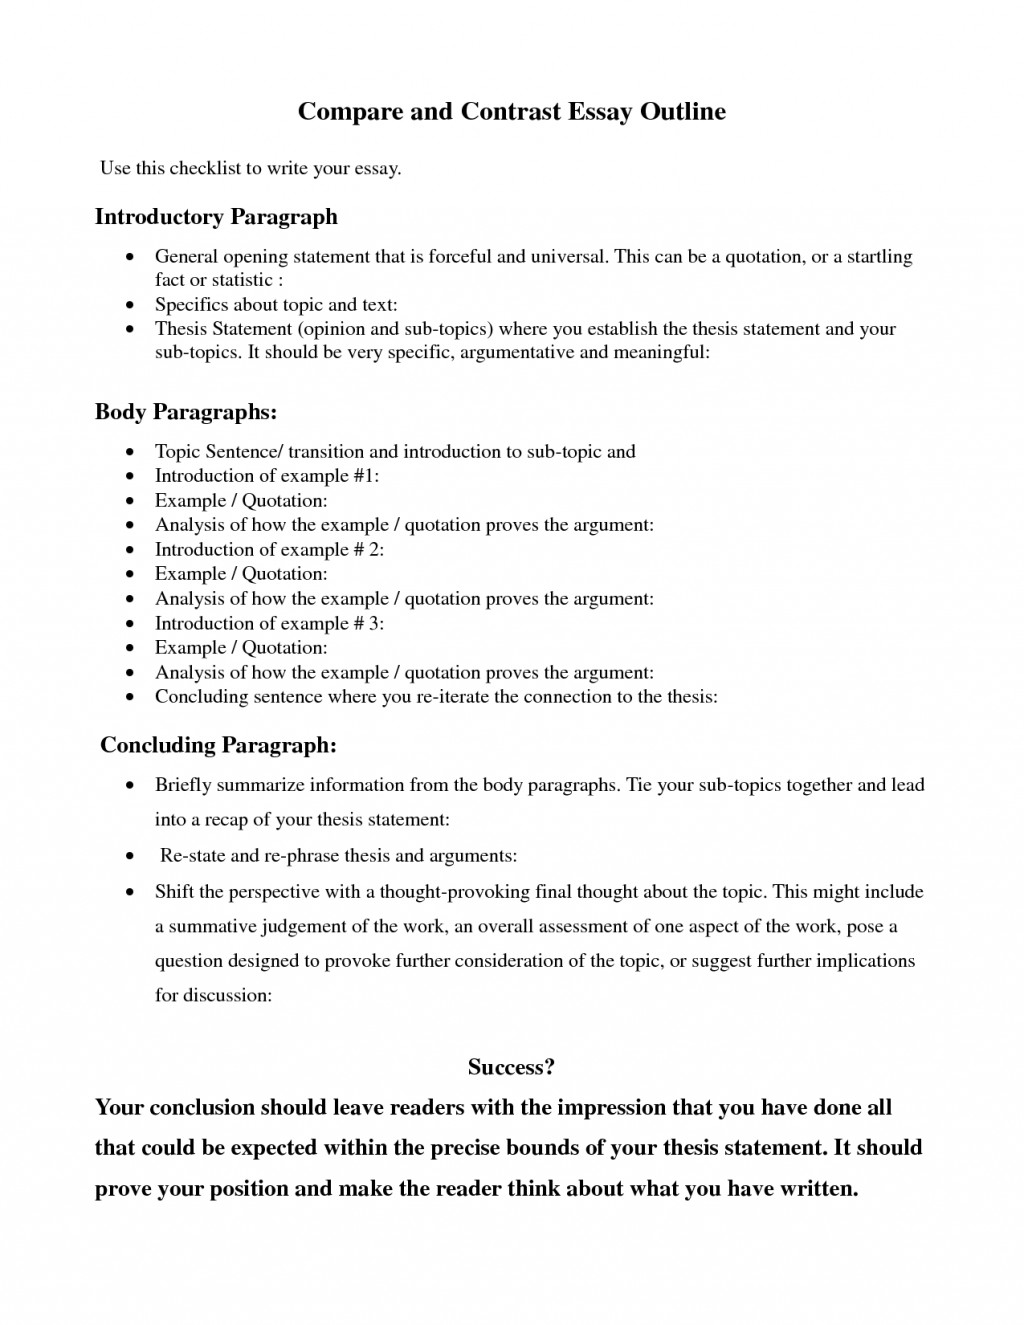 005 Compare And Contrast Essay Topics For College Students Beautiful Large